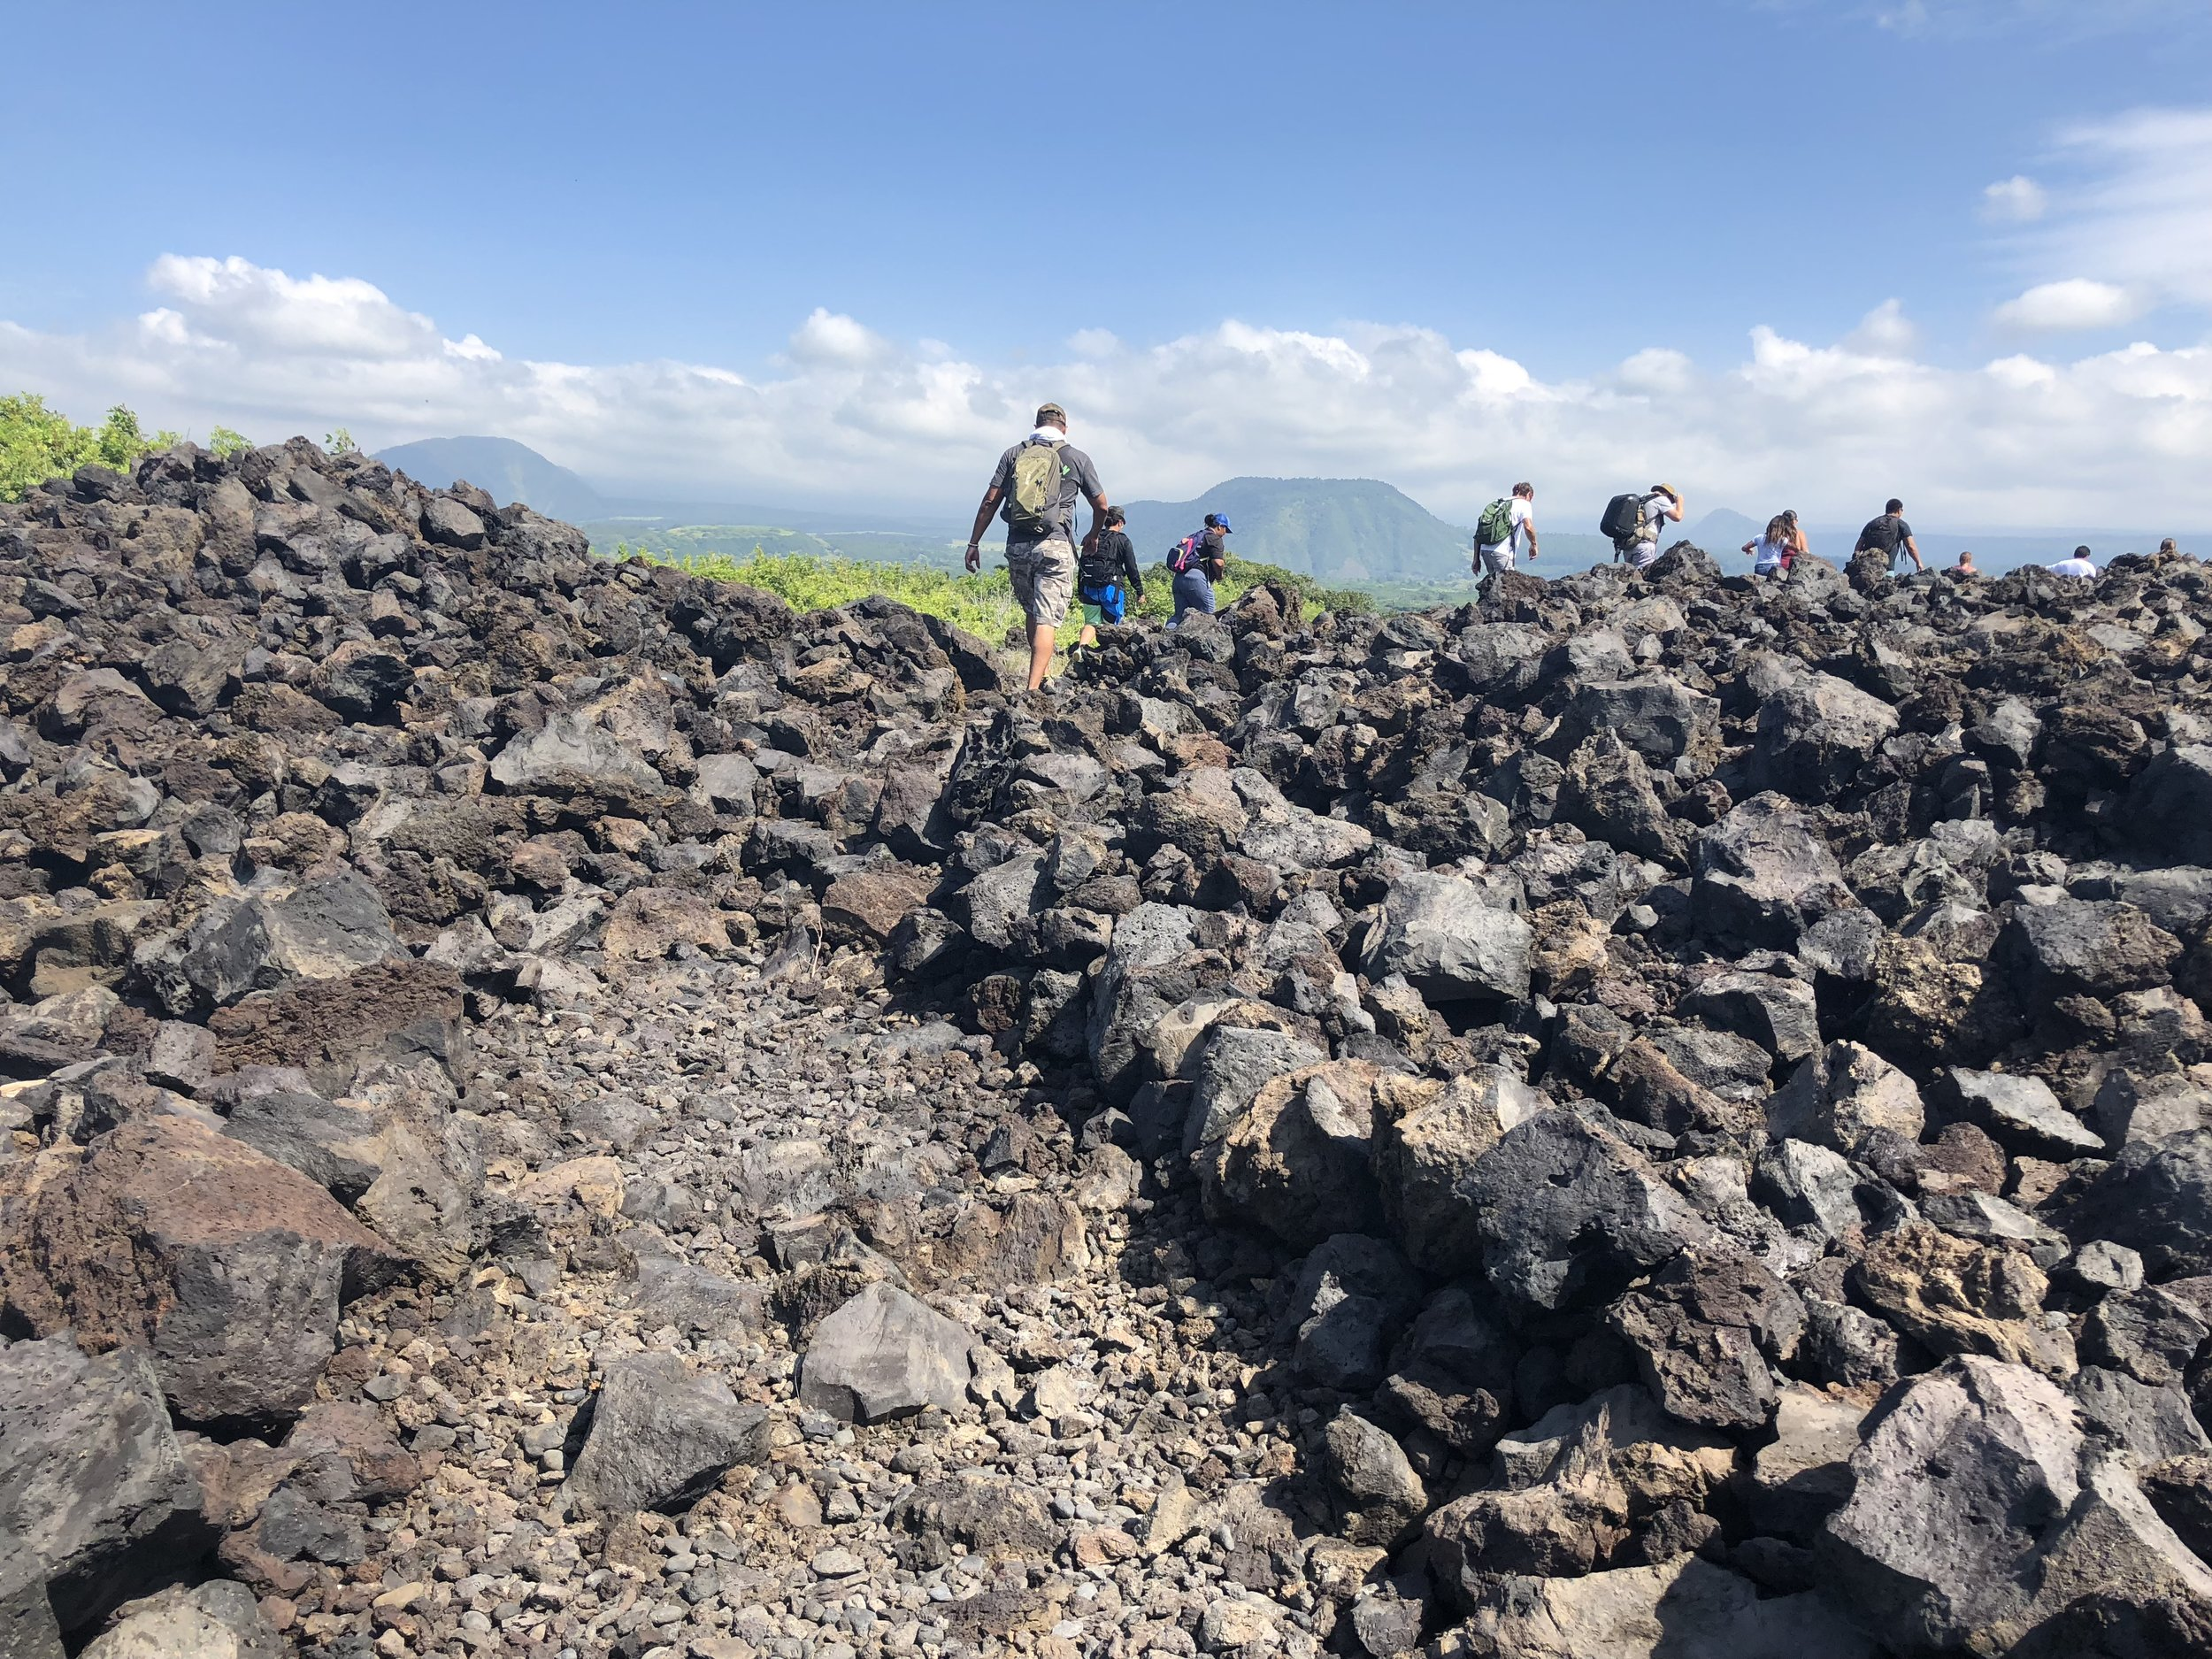 Community Members hike from Punaluʻu to Kawa, Kaʻu with Ala Kahakai Trail Association.